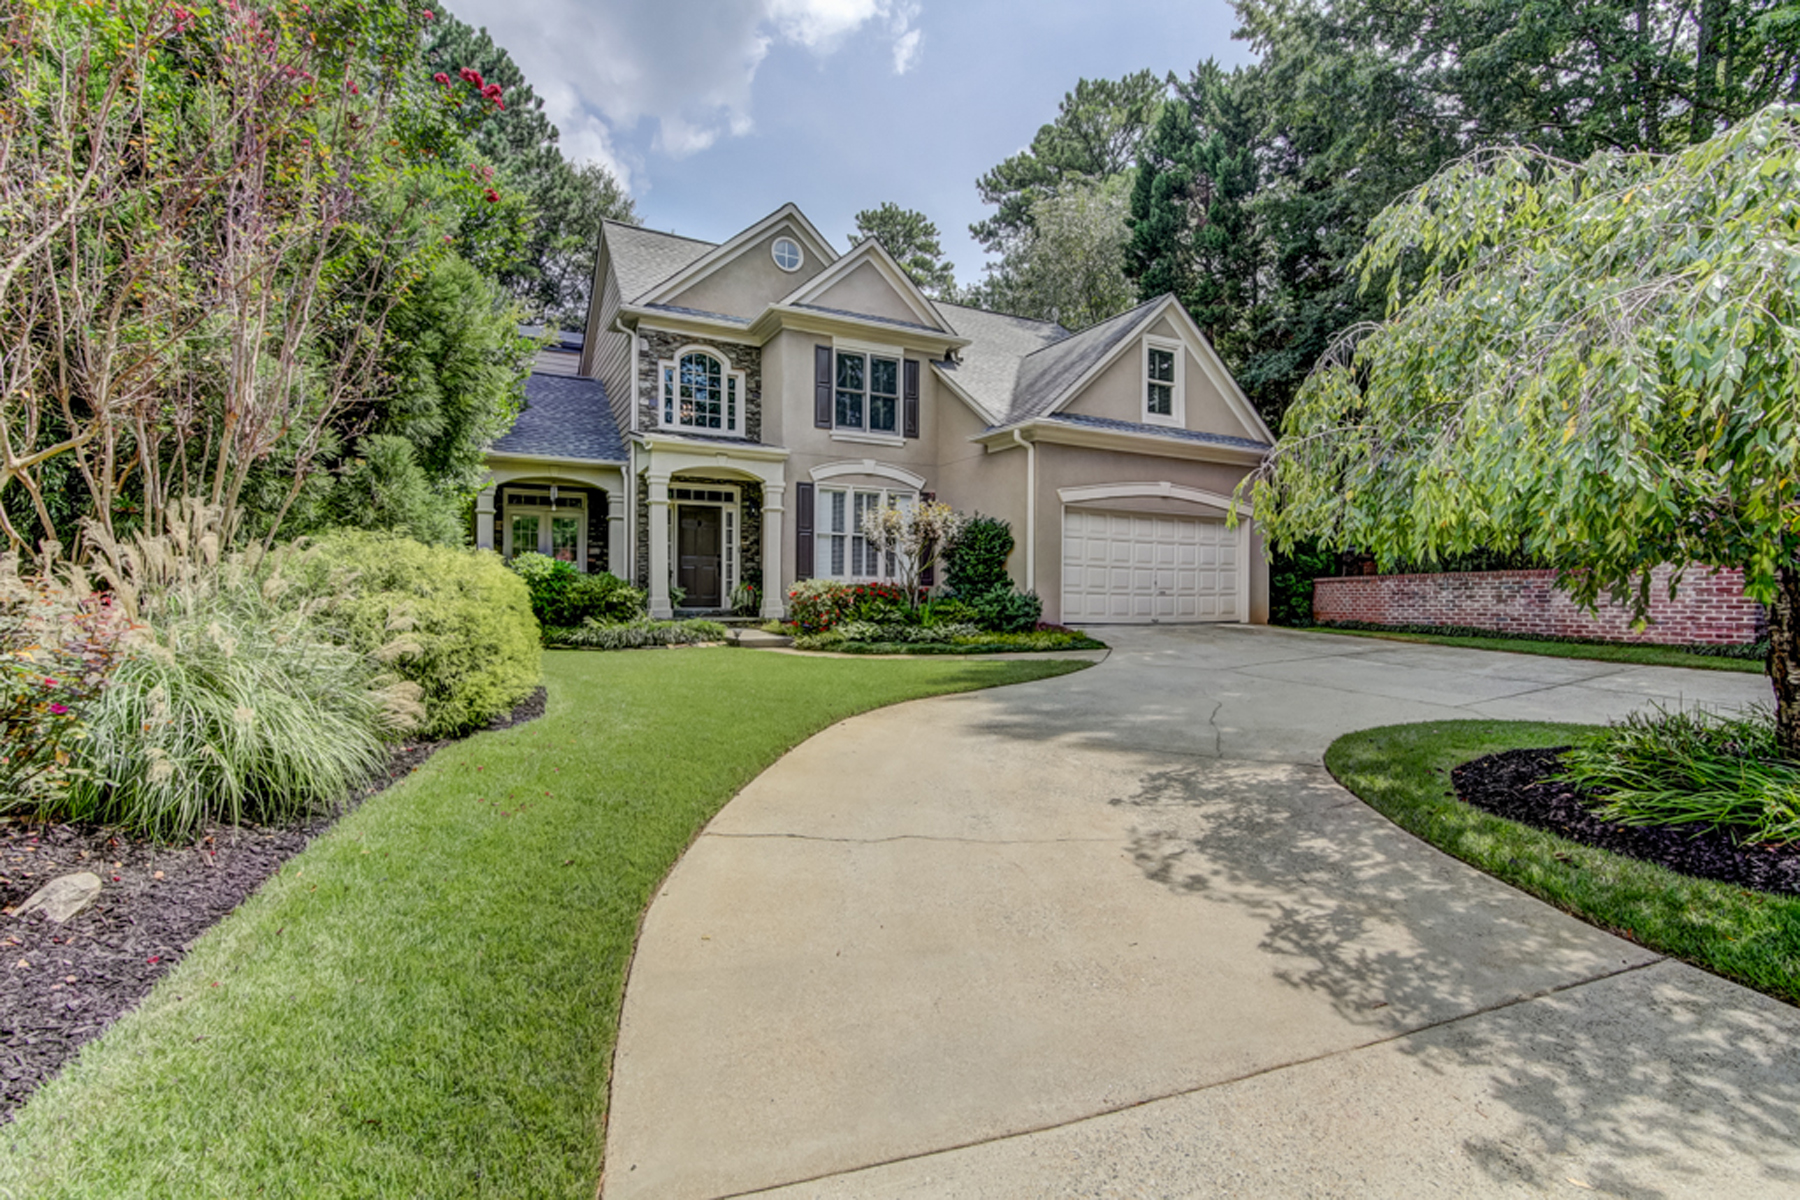 Single Family Home for Sale at Beautifully Situated On Stunning Private Corner Lot 4521 Weldon Drive SE Smyrna, Georgia 30080 United States